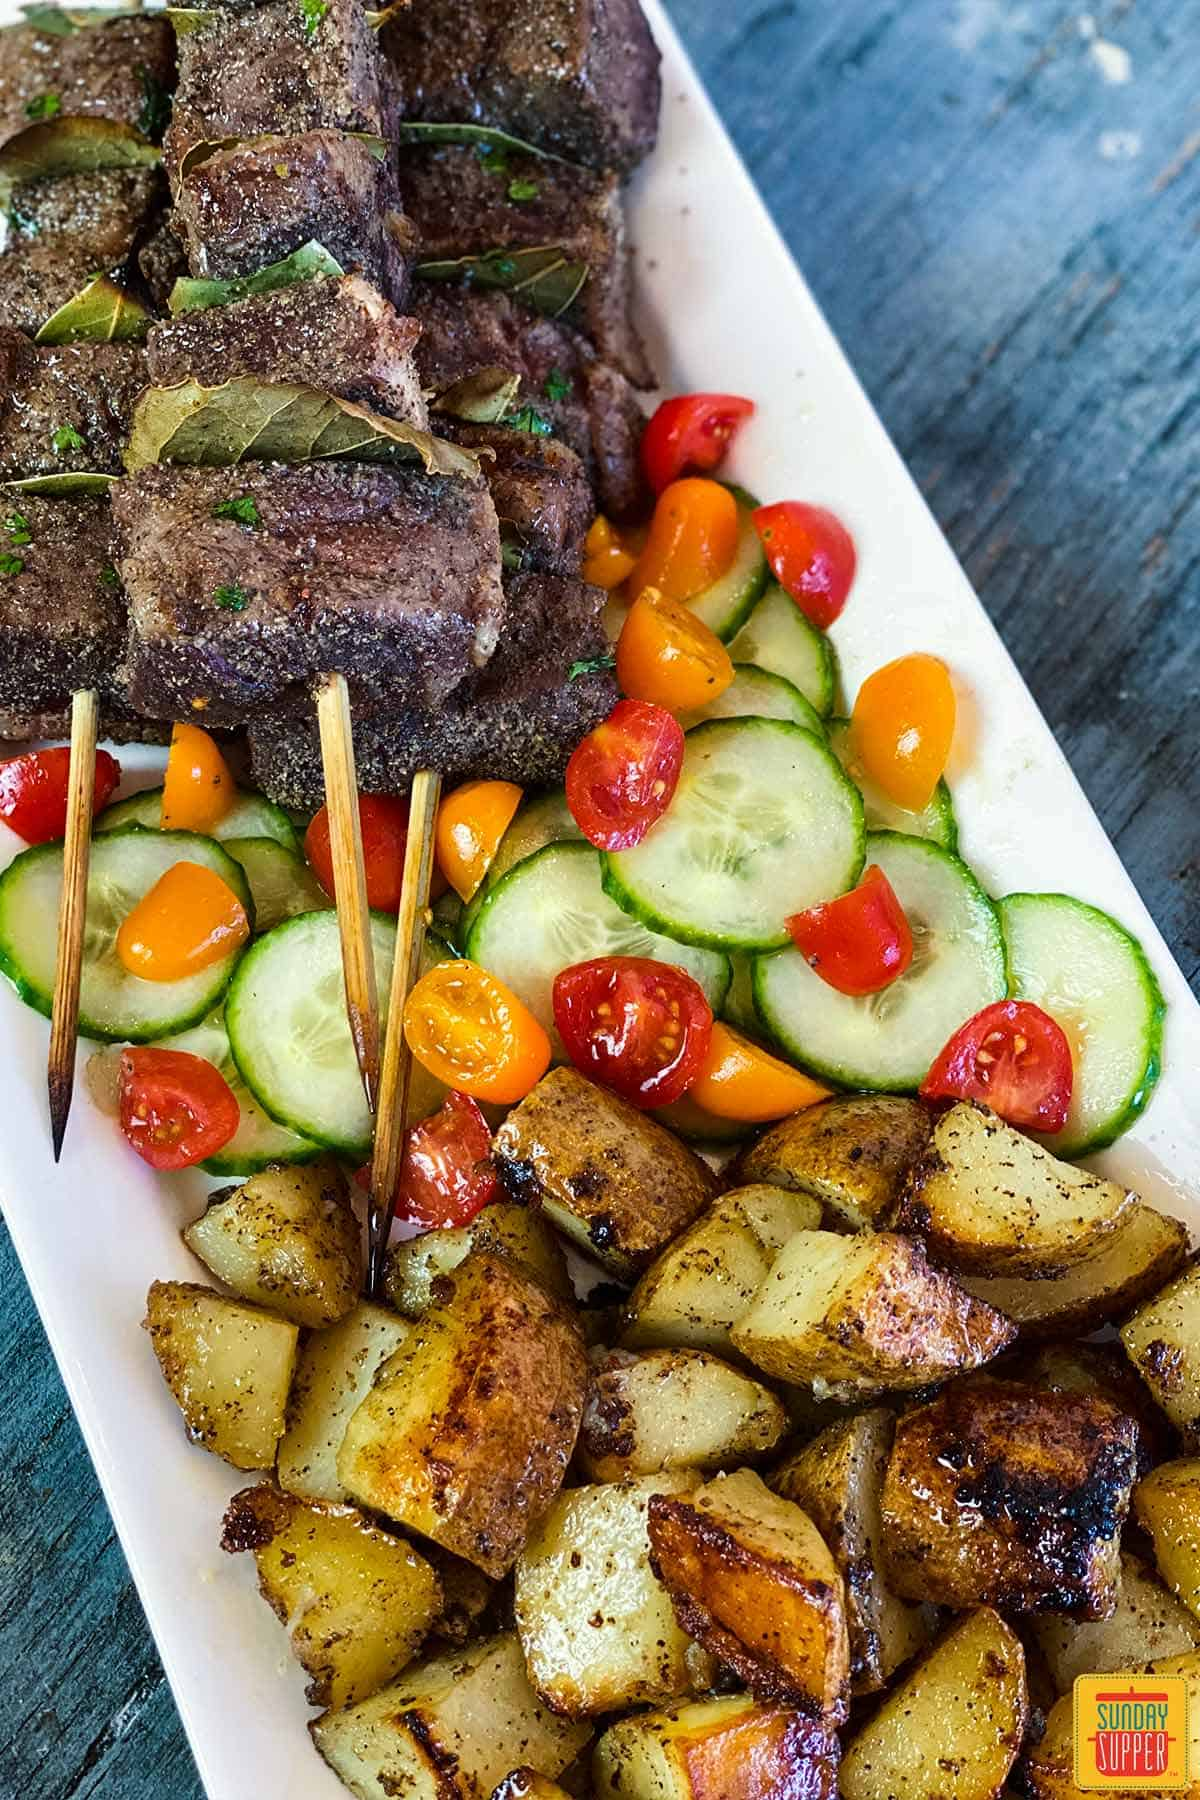 Close up of grilled potatoes recipe after cooking with a side of tomato cucumber salad and Portuguese Beef Skewers